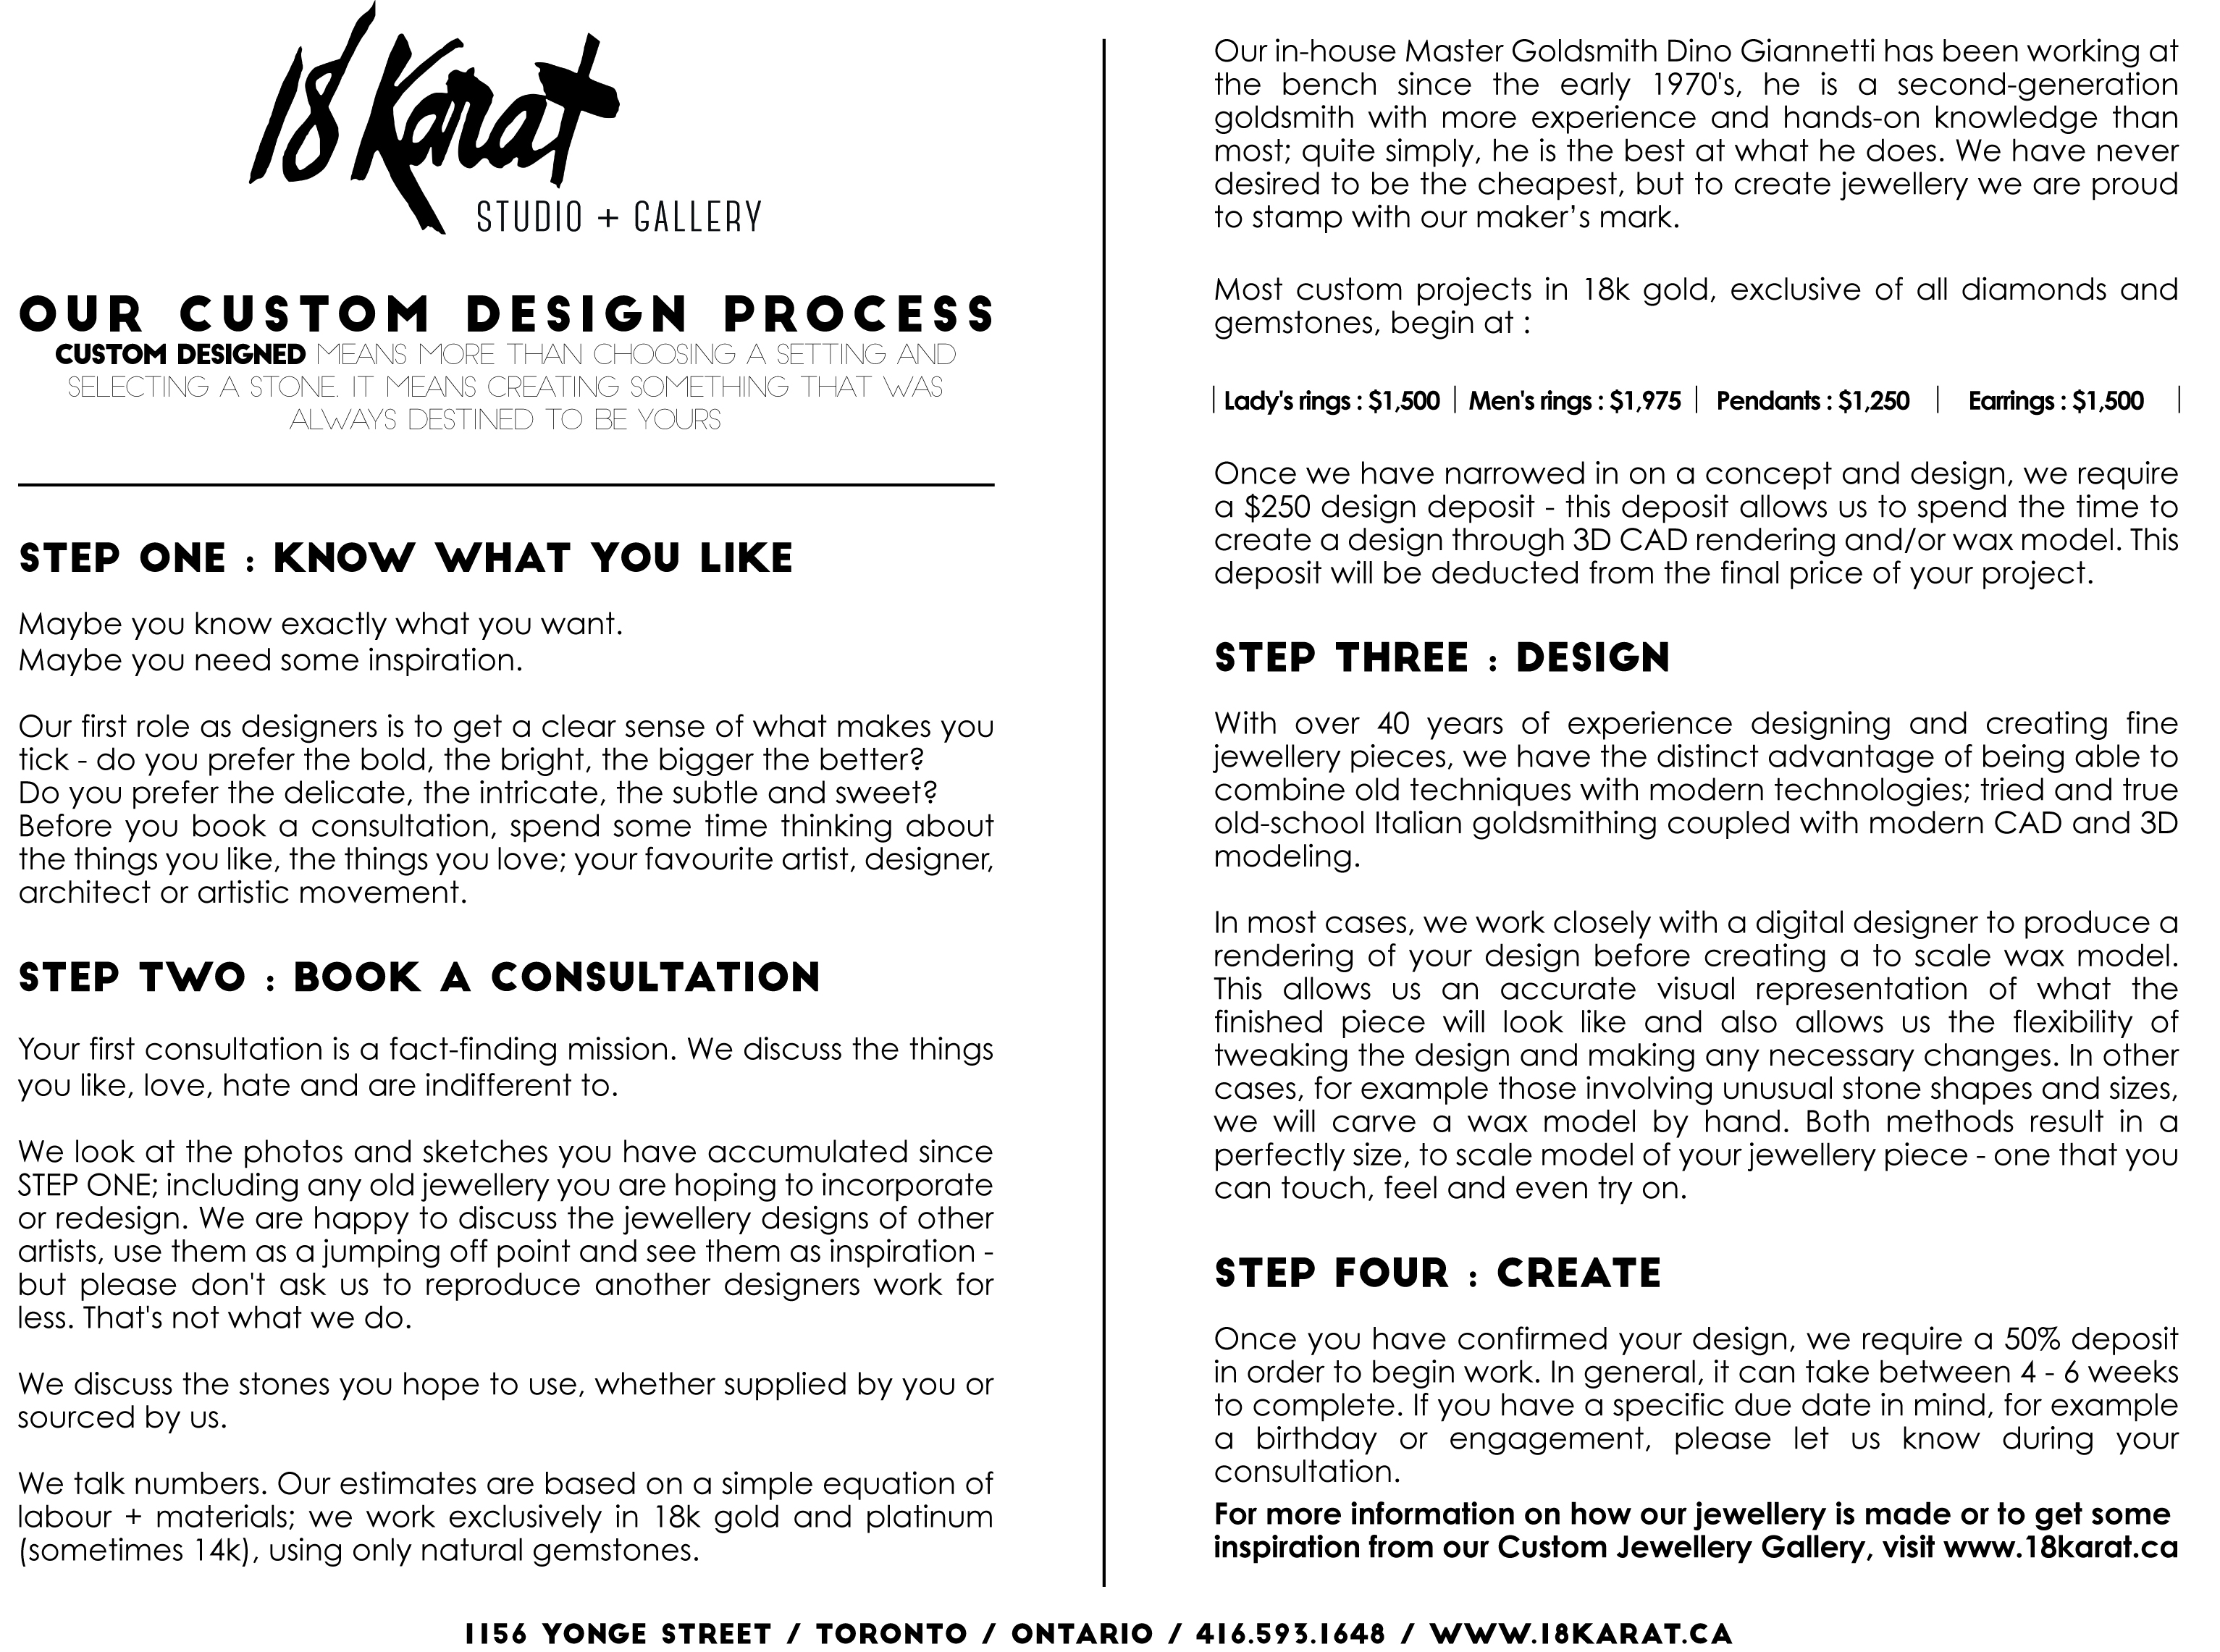 our custom design process <br />custom designed means more than choosing a setting and selecting a stone. it means creating something that was always destined to be yours.</p> <p>STEP ONE : KNOW WHAT YOU LIKE <br />Maybe you know exactly what you want.   <br />Maybe you need some inspiration.</p> <p>Our first role as designers is to get a clear sense of what makes you tick - do you prefer the bold, the bright, the bigger the better?  <br />Do you prefer the delicate, the intricate, the subtle and sweet?  <br />Before you book a consultation, spend some time thinking about the things you like, the things you love; your favourite artist, designer, architect or artistic movement. <br />STEP two : book a consultation <br />Your first consultation is a fact-finding mission. We discuss the things you like, love, hate and are indifferent to.</p> <p>We look at the photos and sketches you have accumulated since STEP ONE; including any old jewellery you are hoping to incorporate or redesign. We are happy to discuss the jewellery designs of other artists, use them as a jumping off point and see them as inspiration - but please don't ask us to reproduce another designers work for less. That's not what we do.</p> <p>We discuss the stones you hope to use, whether supplied by you or sourced by us.</p> <p>We talk numbers. Our estimates are based on a simple equation of labour + materials; we work exclusively in 18k gold and platinum (sometimes 14k), using only natural gemstones.  <br />Our in-house Master Goldsmith Dino Giannetti has been working at the bench since the early 1970's, he is a second-generation goldsmith with more experience and hands-on knowledge than most; quite simply, he is the best at what he does. We have never desired to be the cheapest, but to create jewellery we are proud to stamp with our maker's mark.</p> <p>Most custom projects in 18k gold, exclusive of all diamonds and gemstones, begin at :</p> <p>Once we have narrowed in on a concept and design, we requi